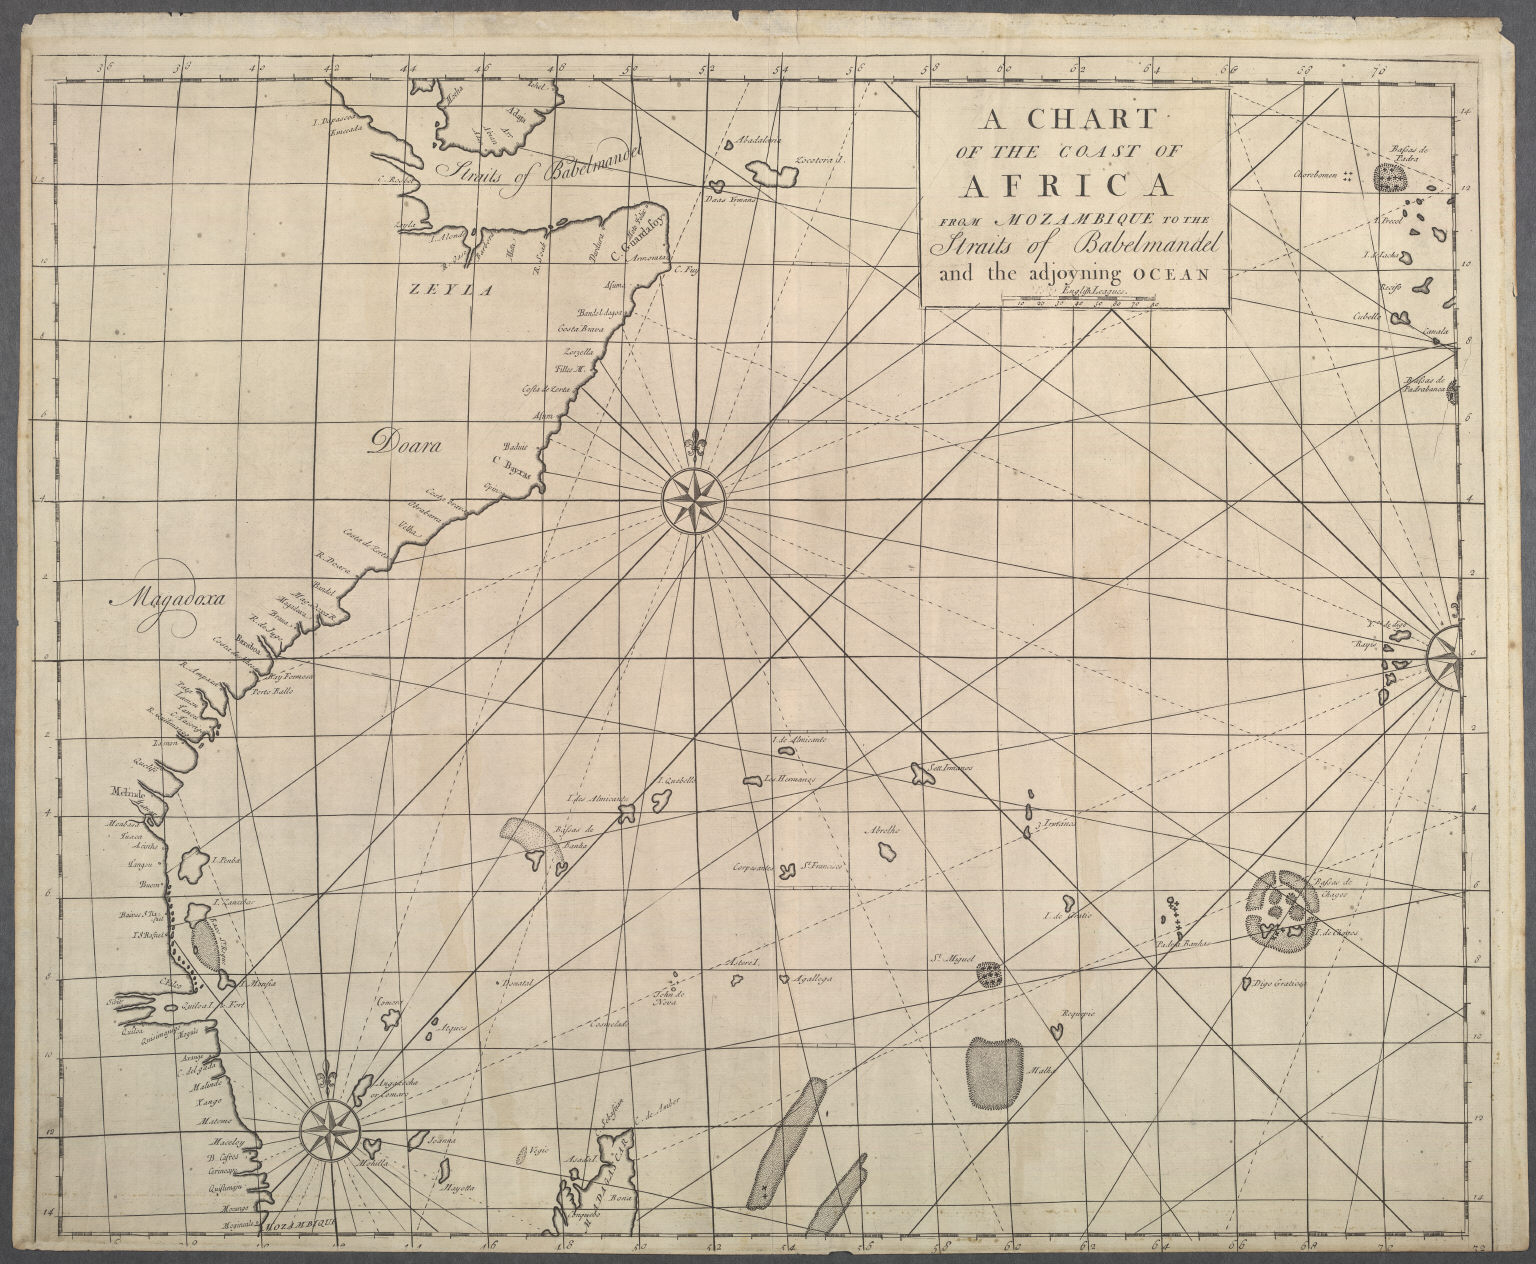 A chart of the coast of Africa from Mozambique to the Straits of Babelmandel and the adjoyning Ocean.